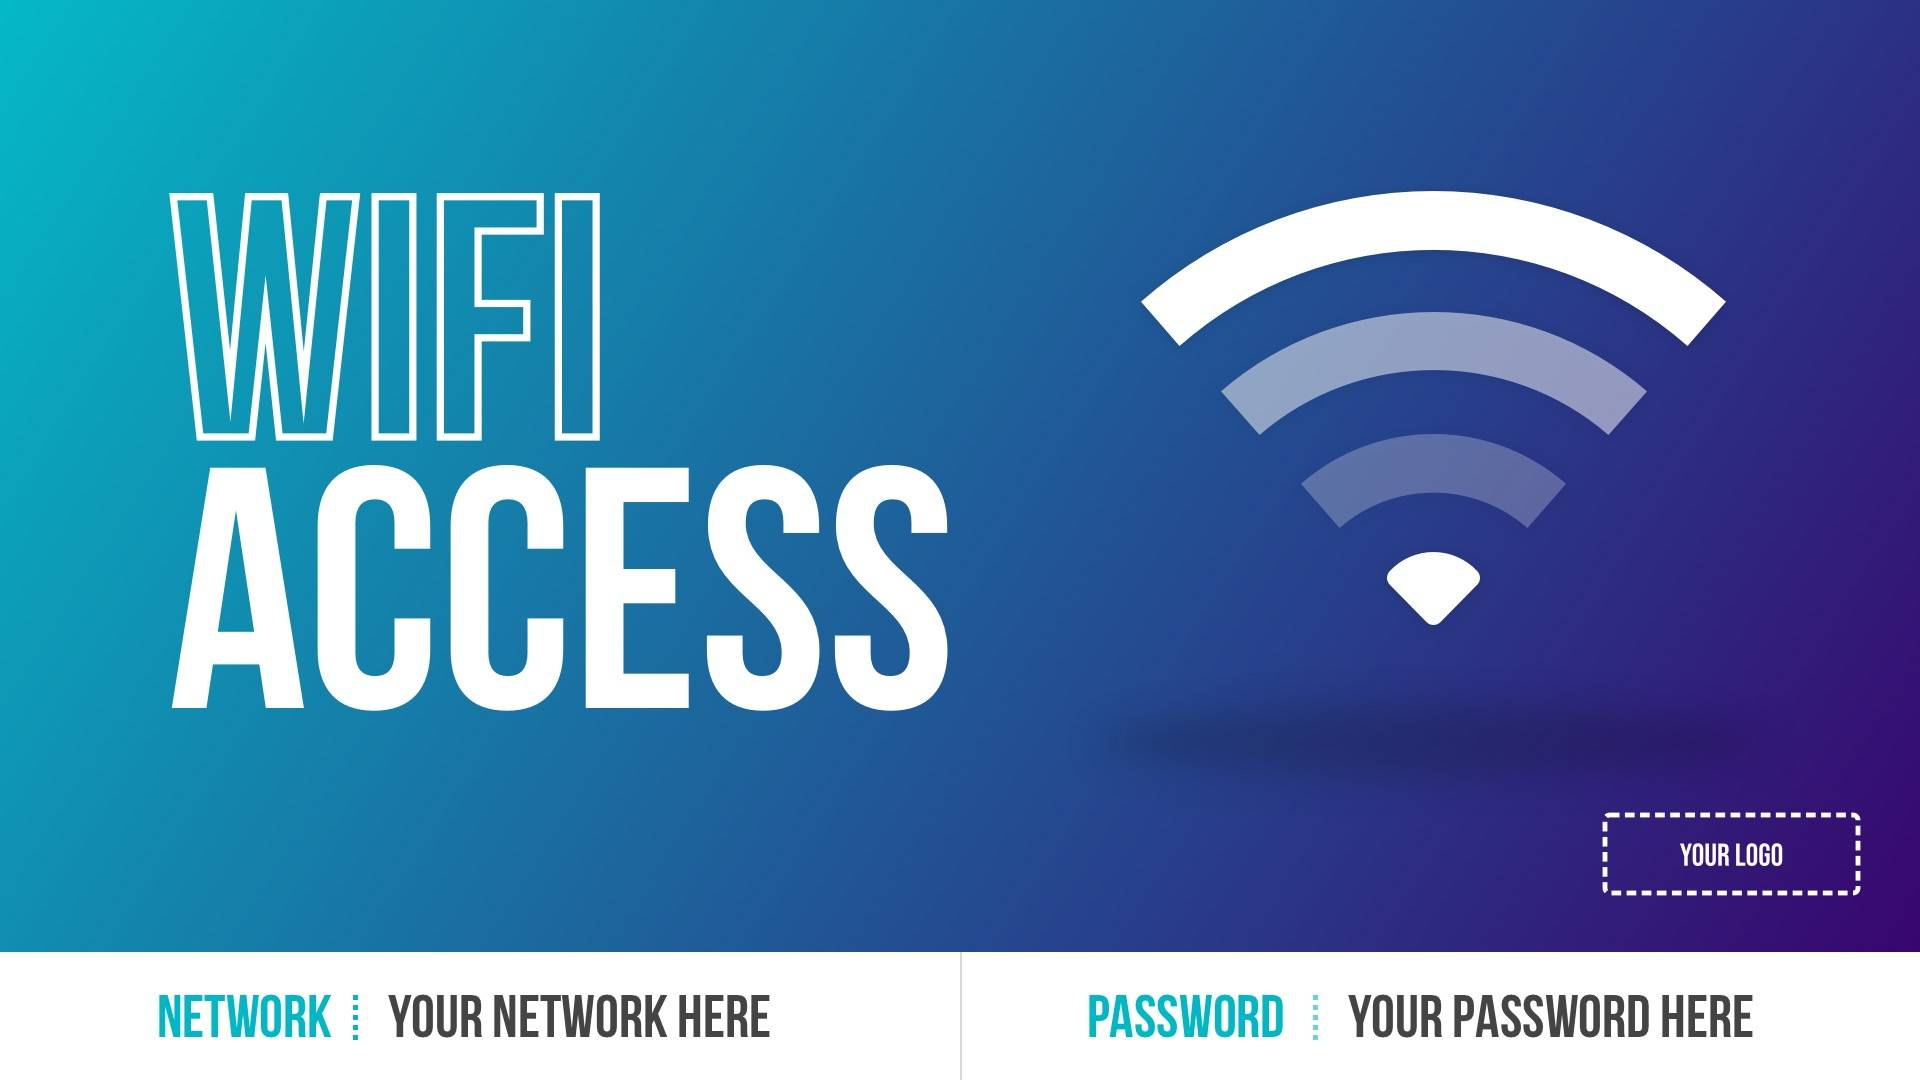 Wifi Access - Network & Password Digital Signage Template